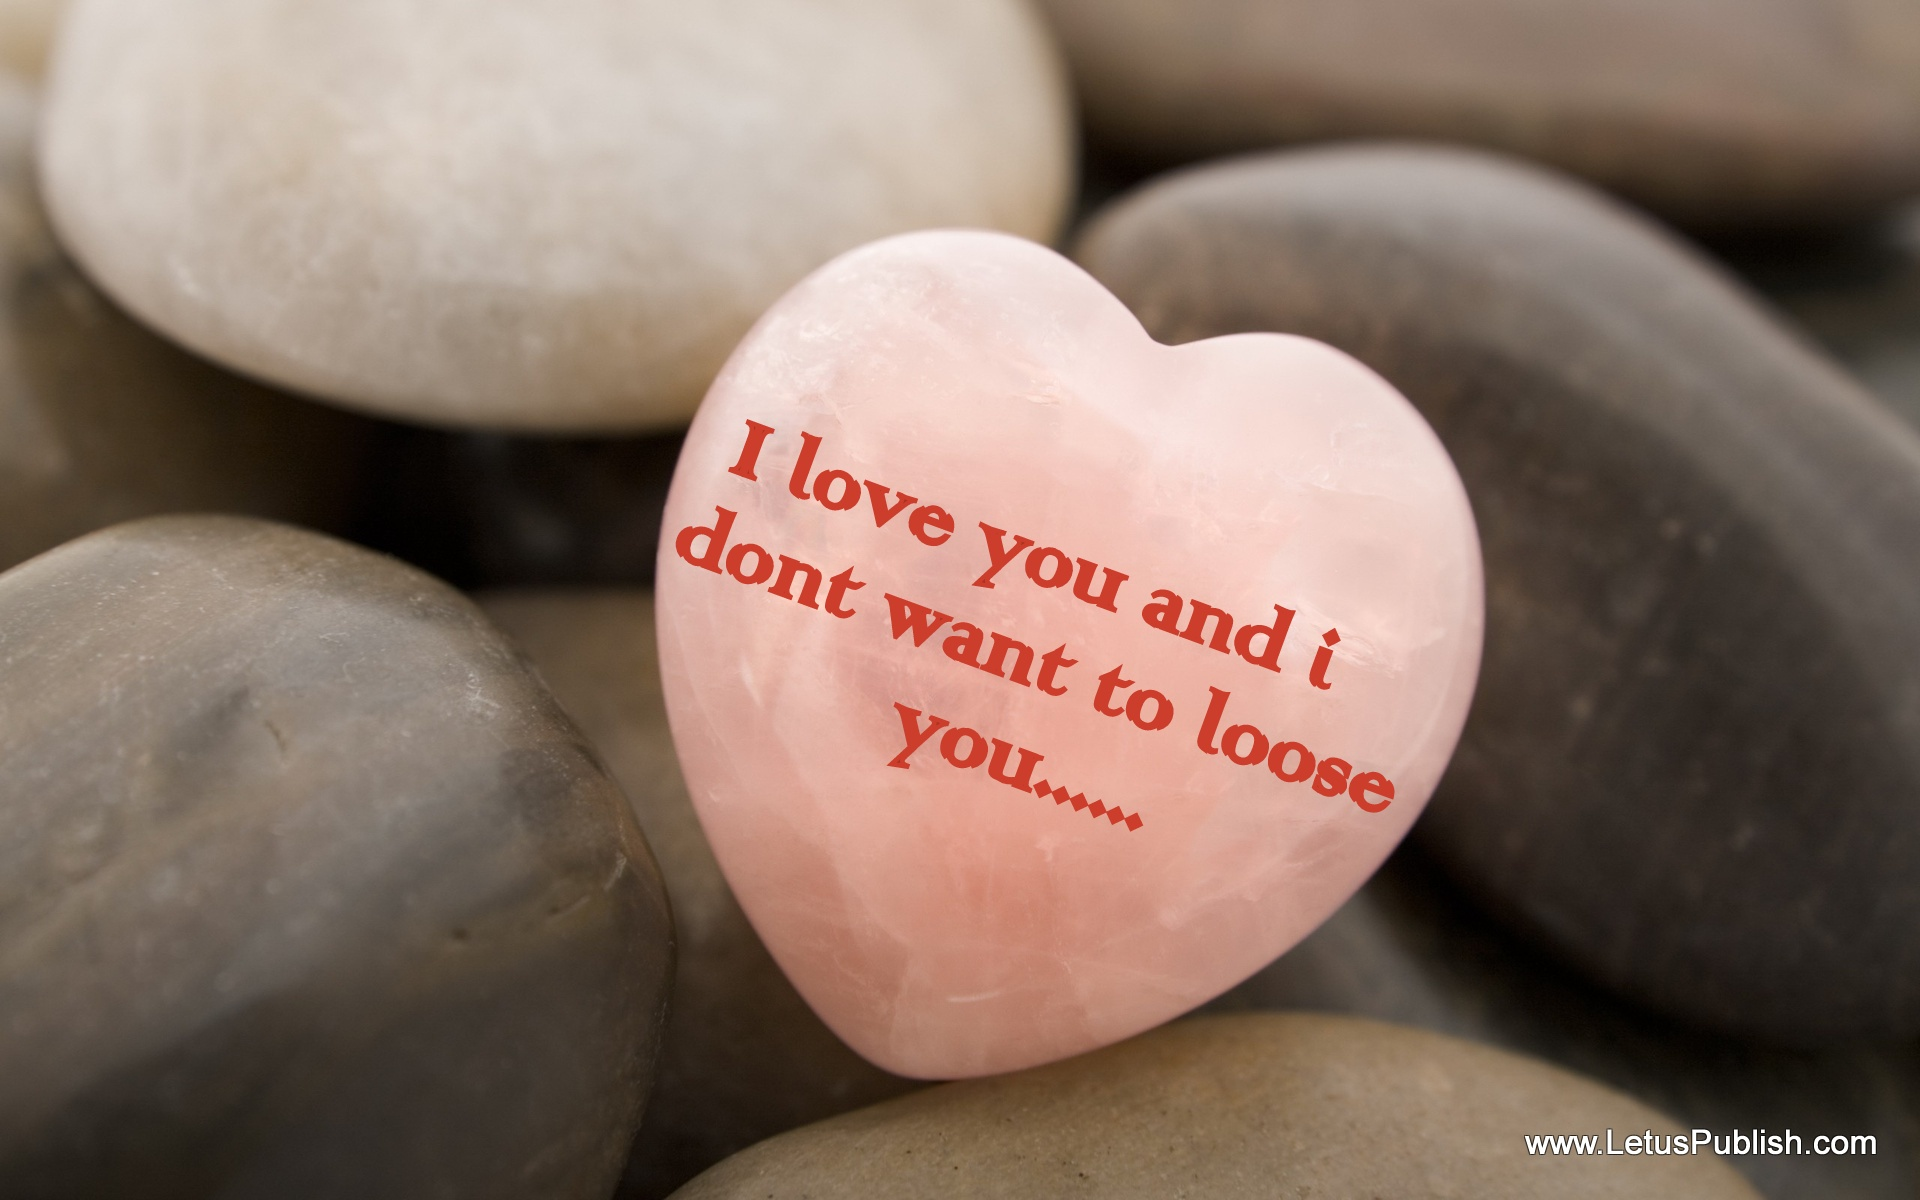 I love you hd wallpaper with quotes